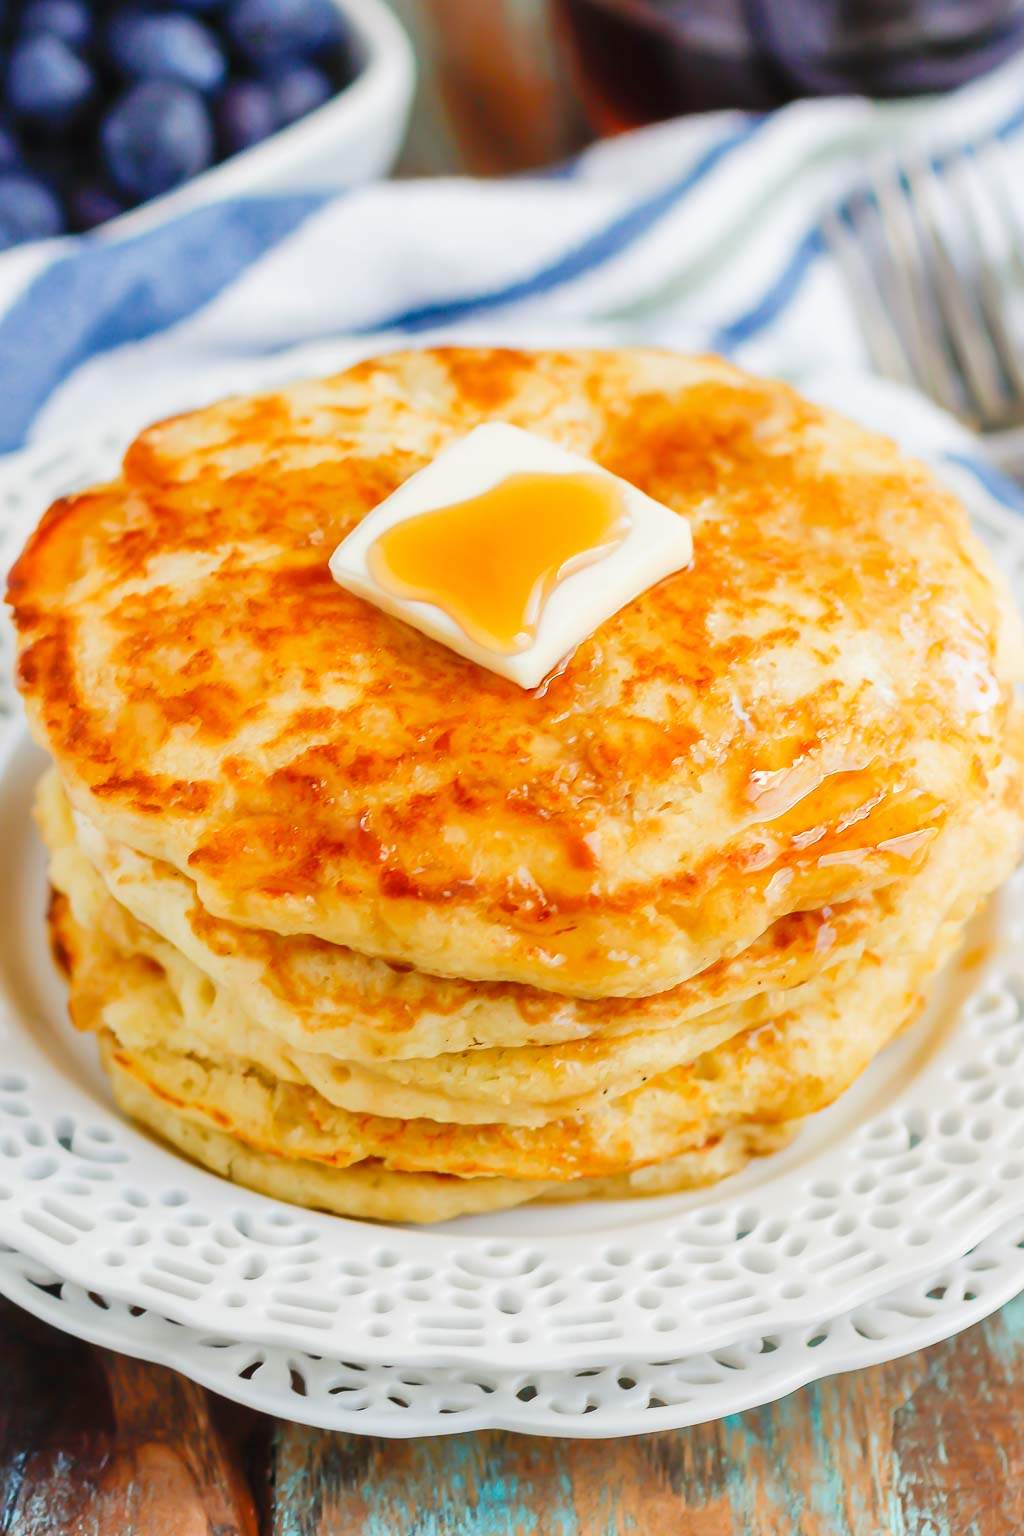 These Buttermilk Pancakes are thick, fluffy, and ready in just 25 minutes. One bite and you'll fall in love with the taste and texture of these homemade pancakes. You'll never go back to the boxed kind again!